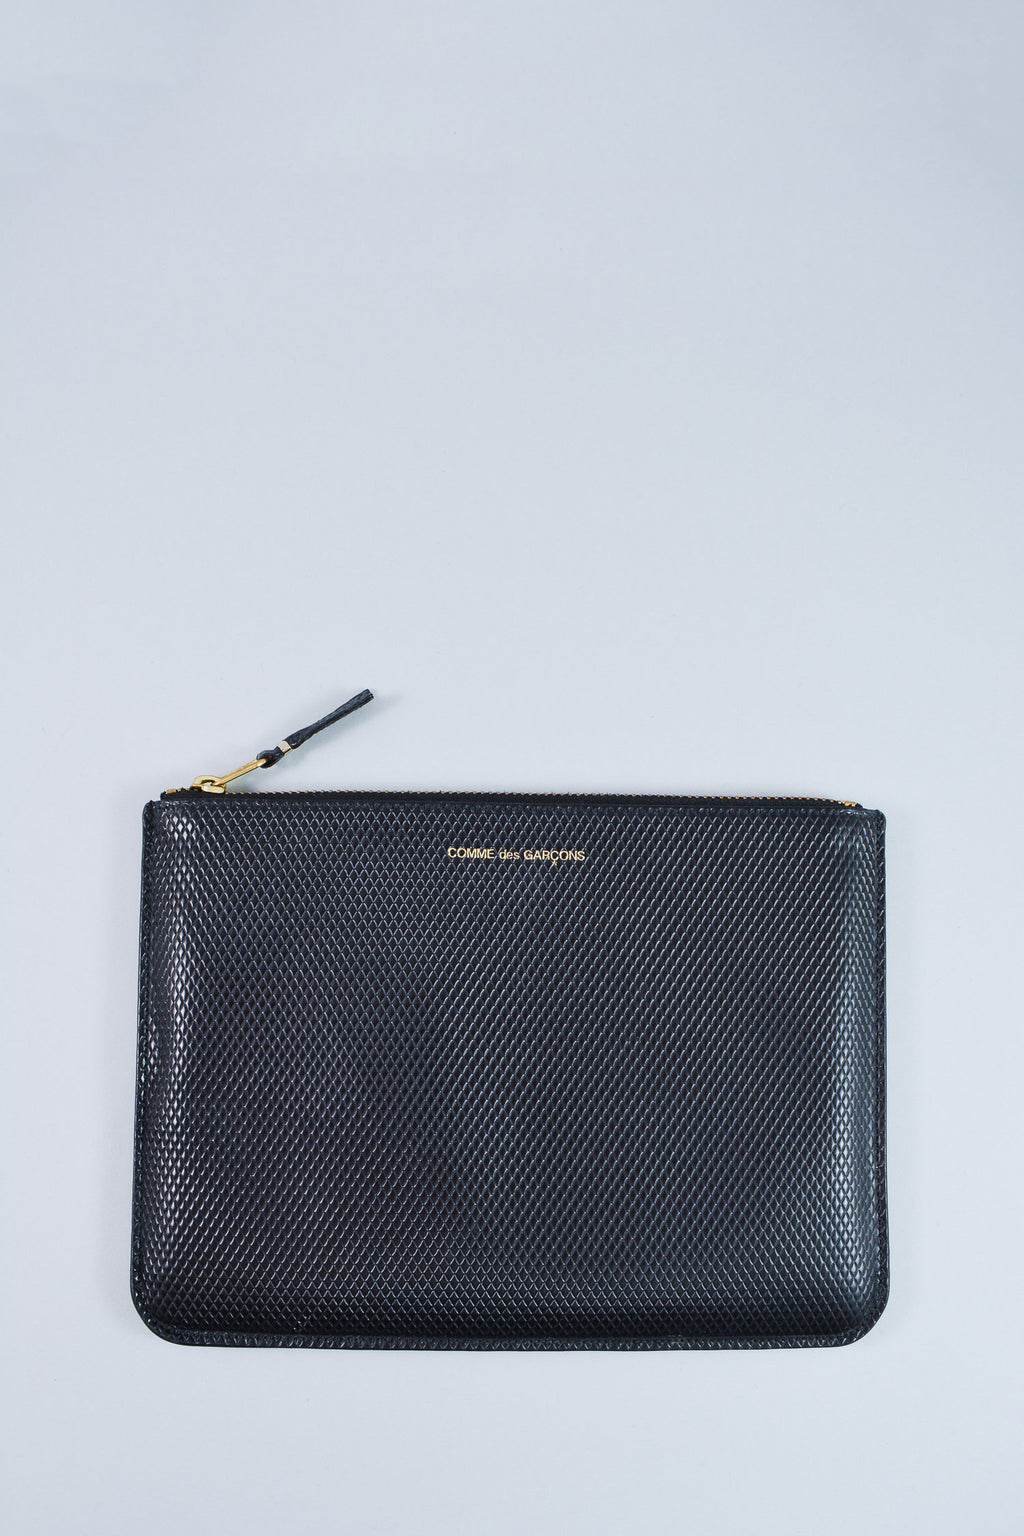 Comme des Garcon Embossed Leather Zip Pouch